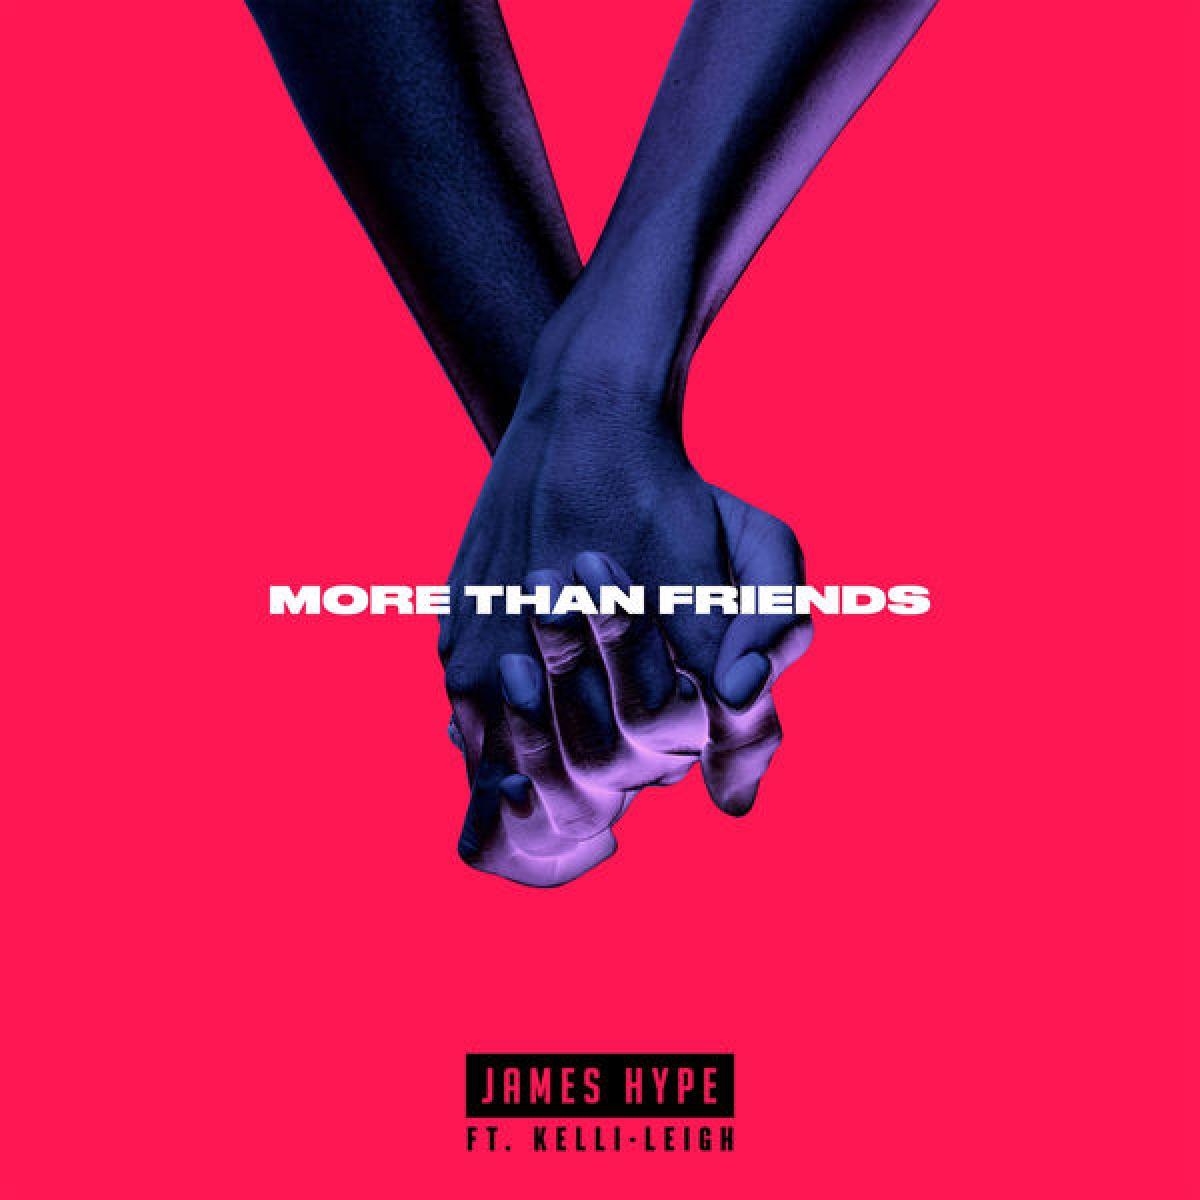 JAMES HYPE - More Than Friends